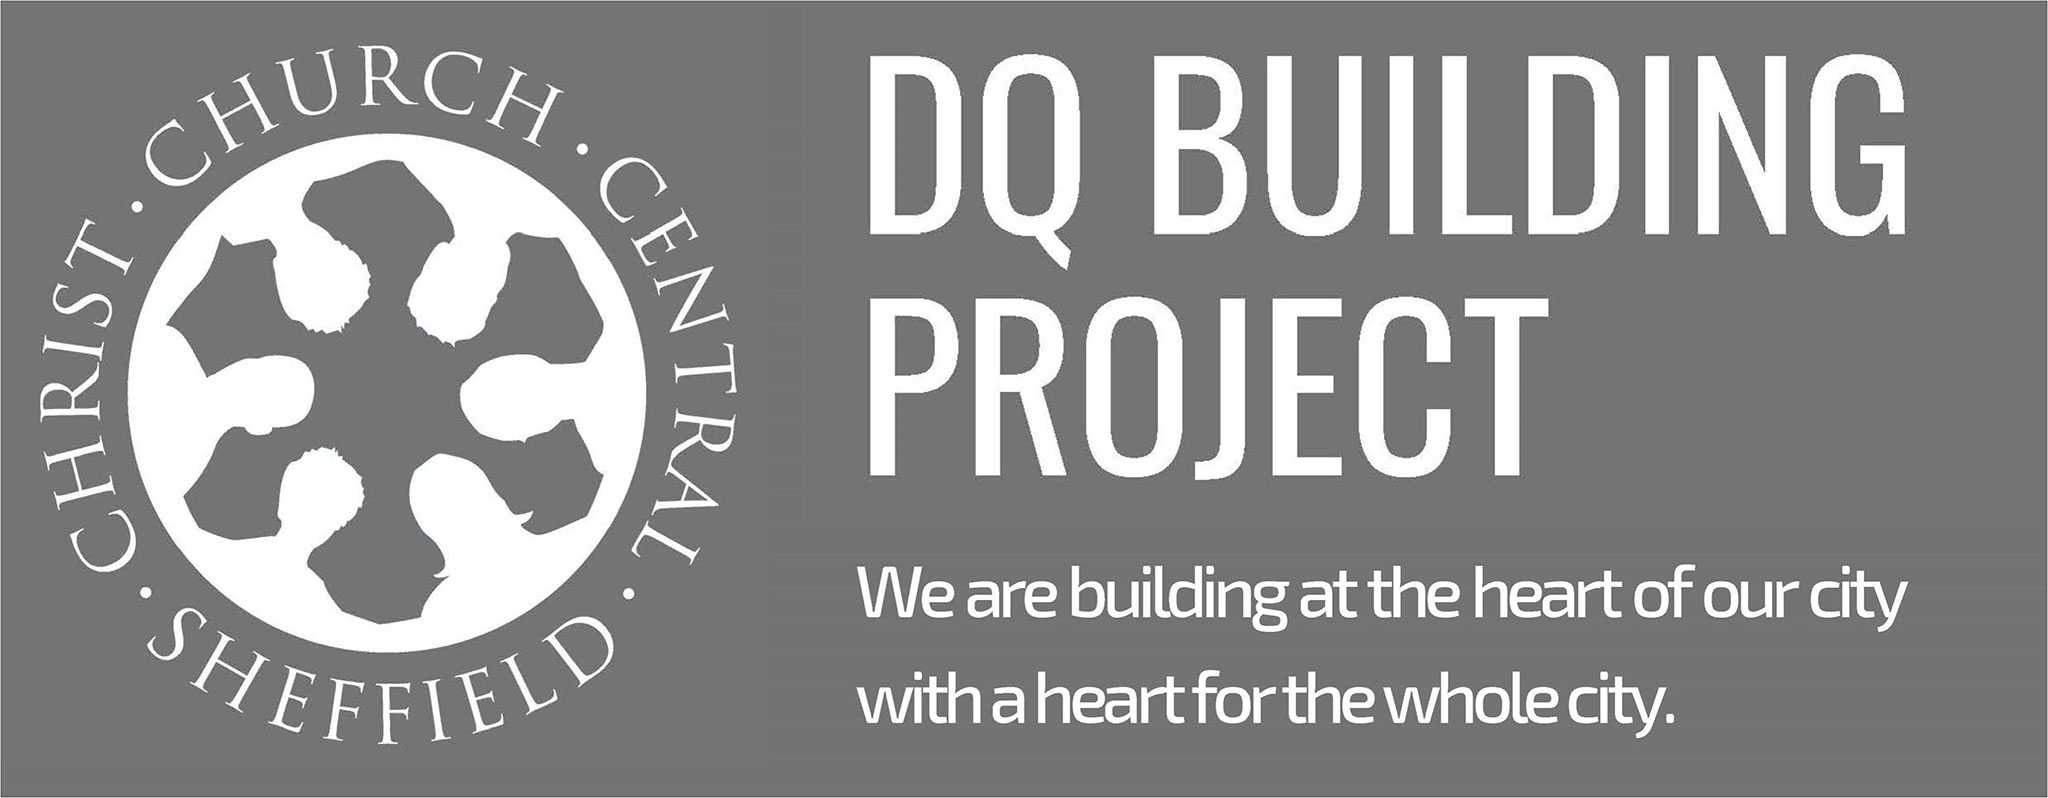 DQ Building Project